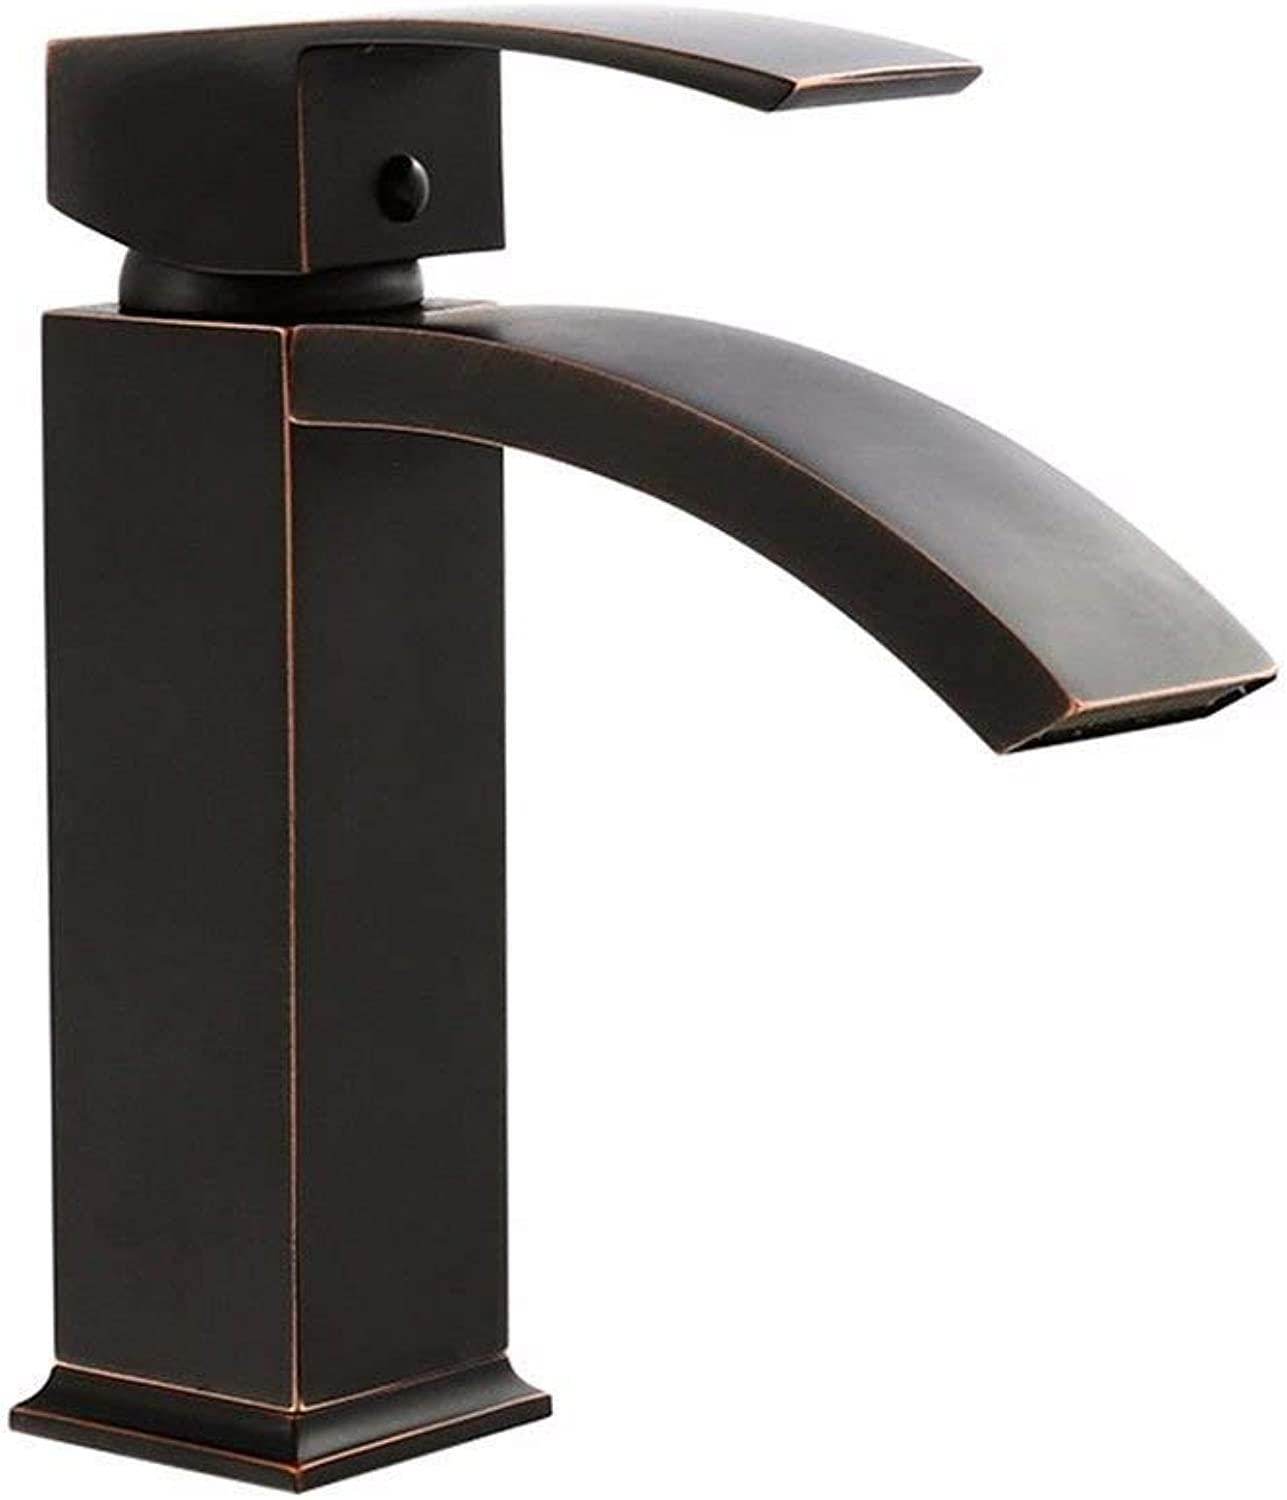 Oudan Basin Mixer Tap Bathroom Sink Faucet Retro-copper Brushed Black basin toilet and cold water faucets bathroom sinks single hole Single Handle faucet, high (color   High)